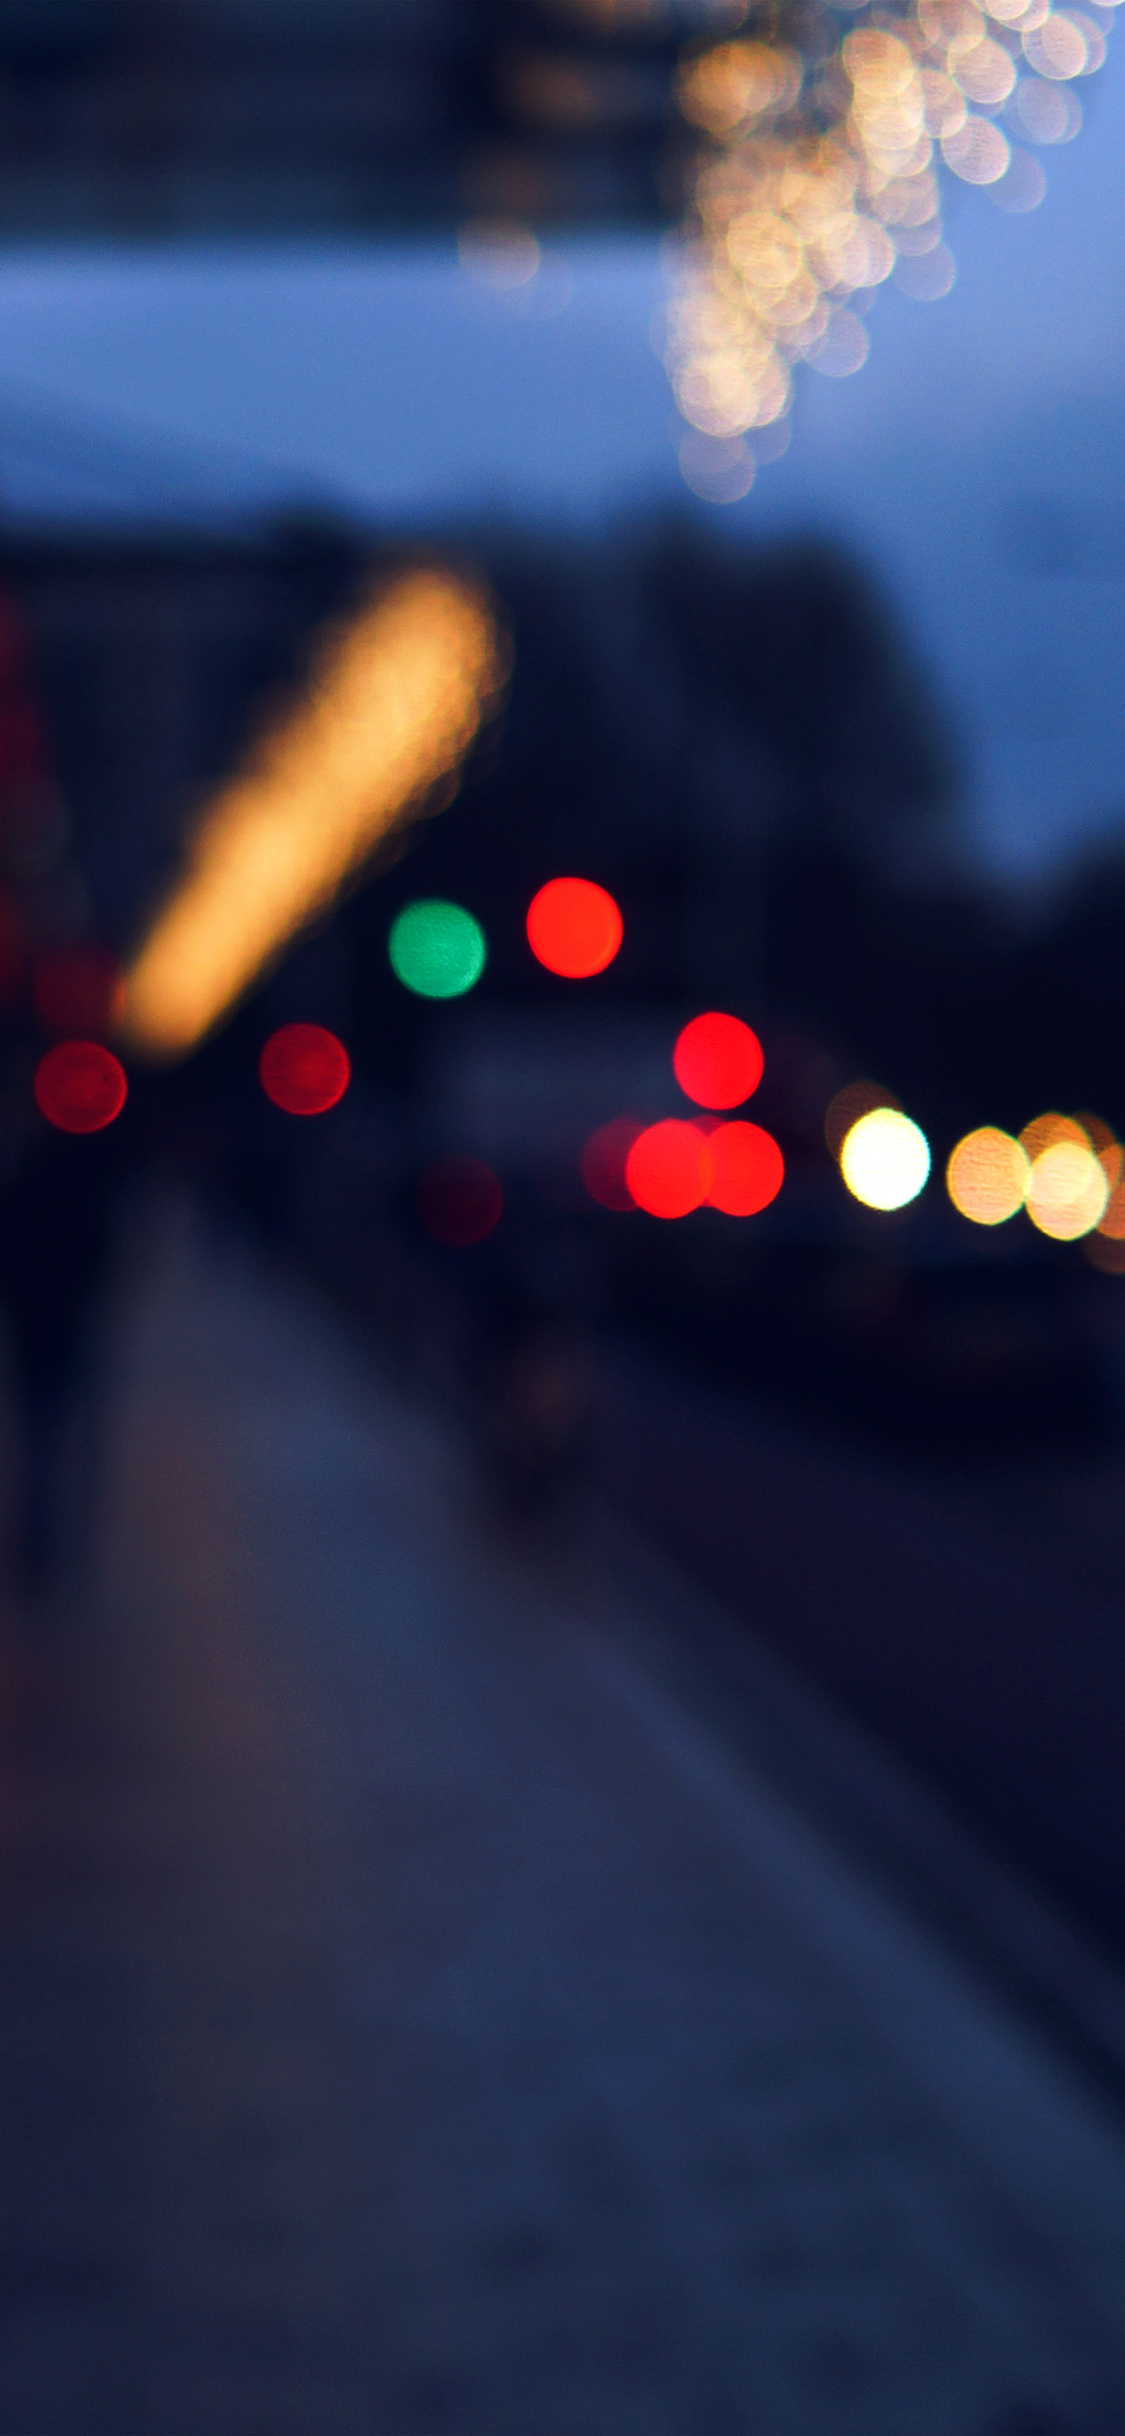 Iphonexpapers Com Iphone X Wallpaper Nc66 Bokeh Street Lights